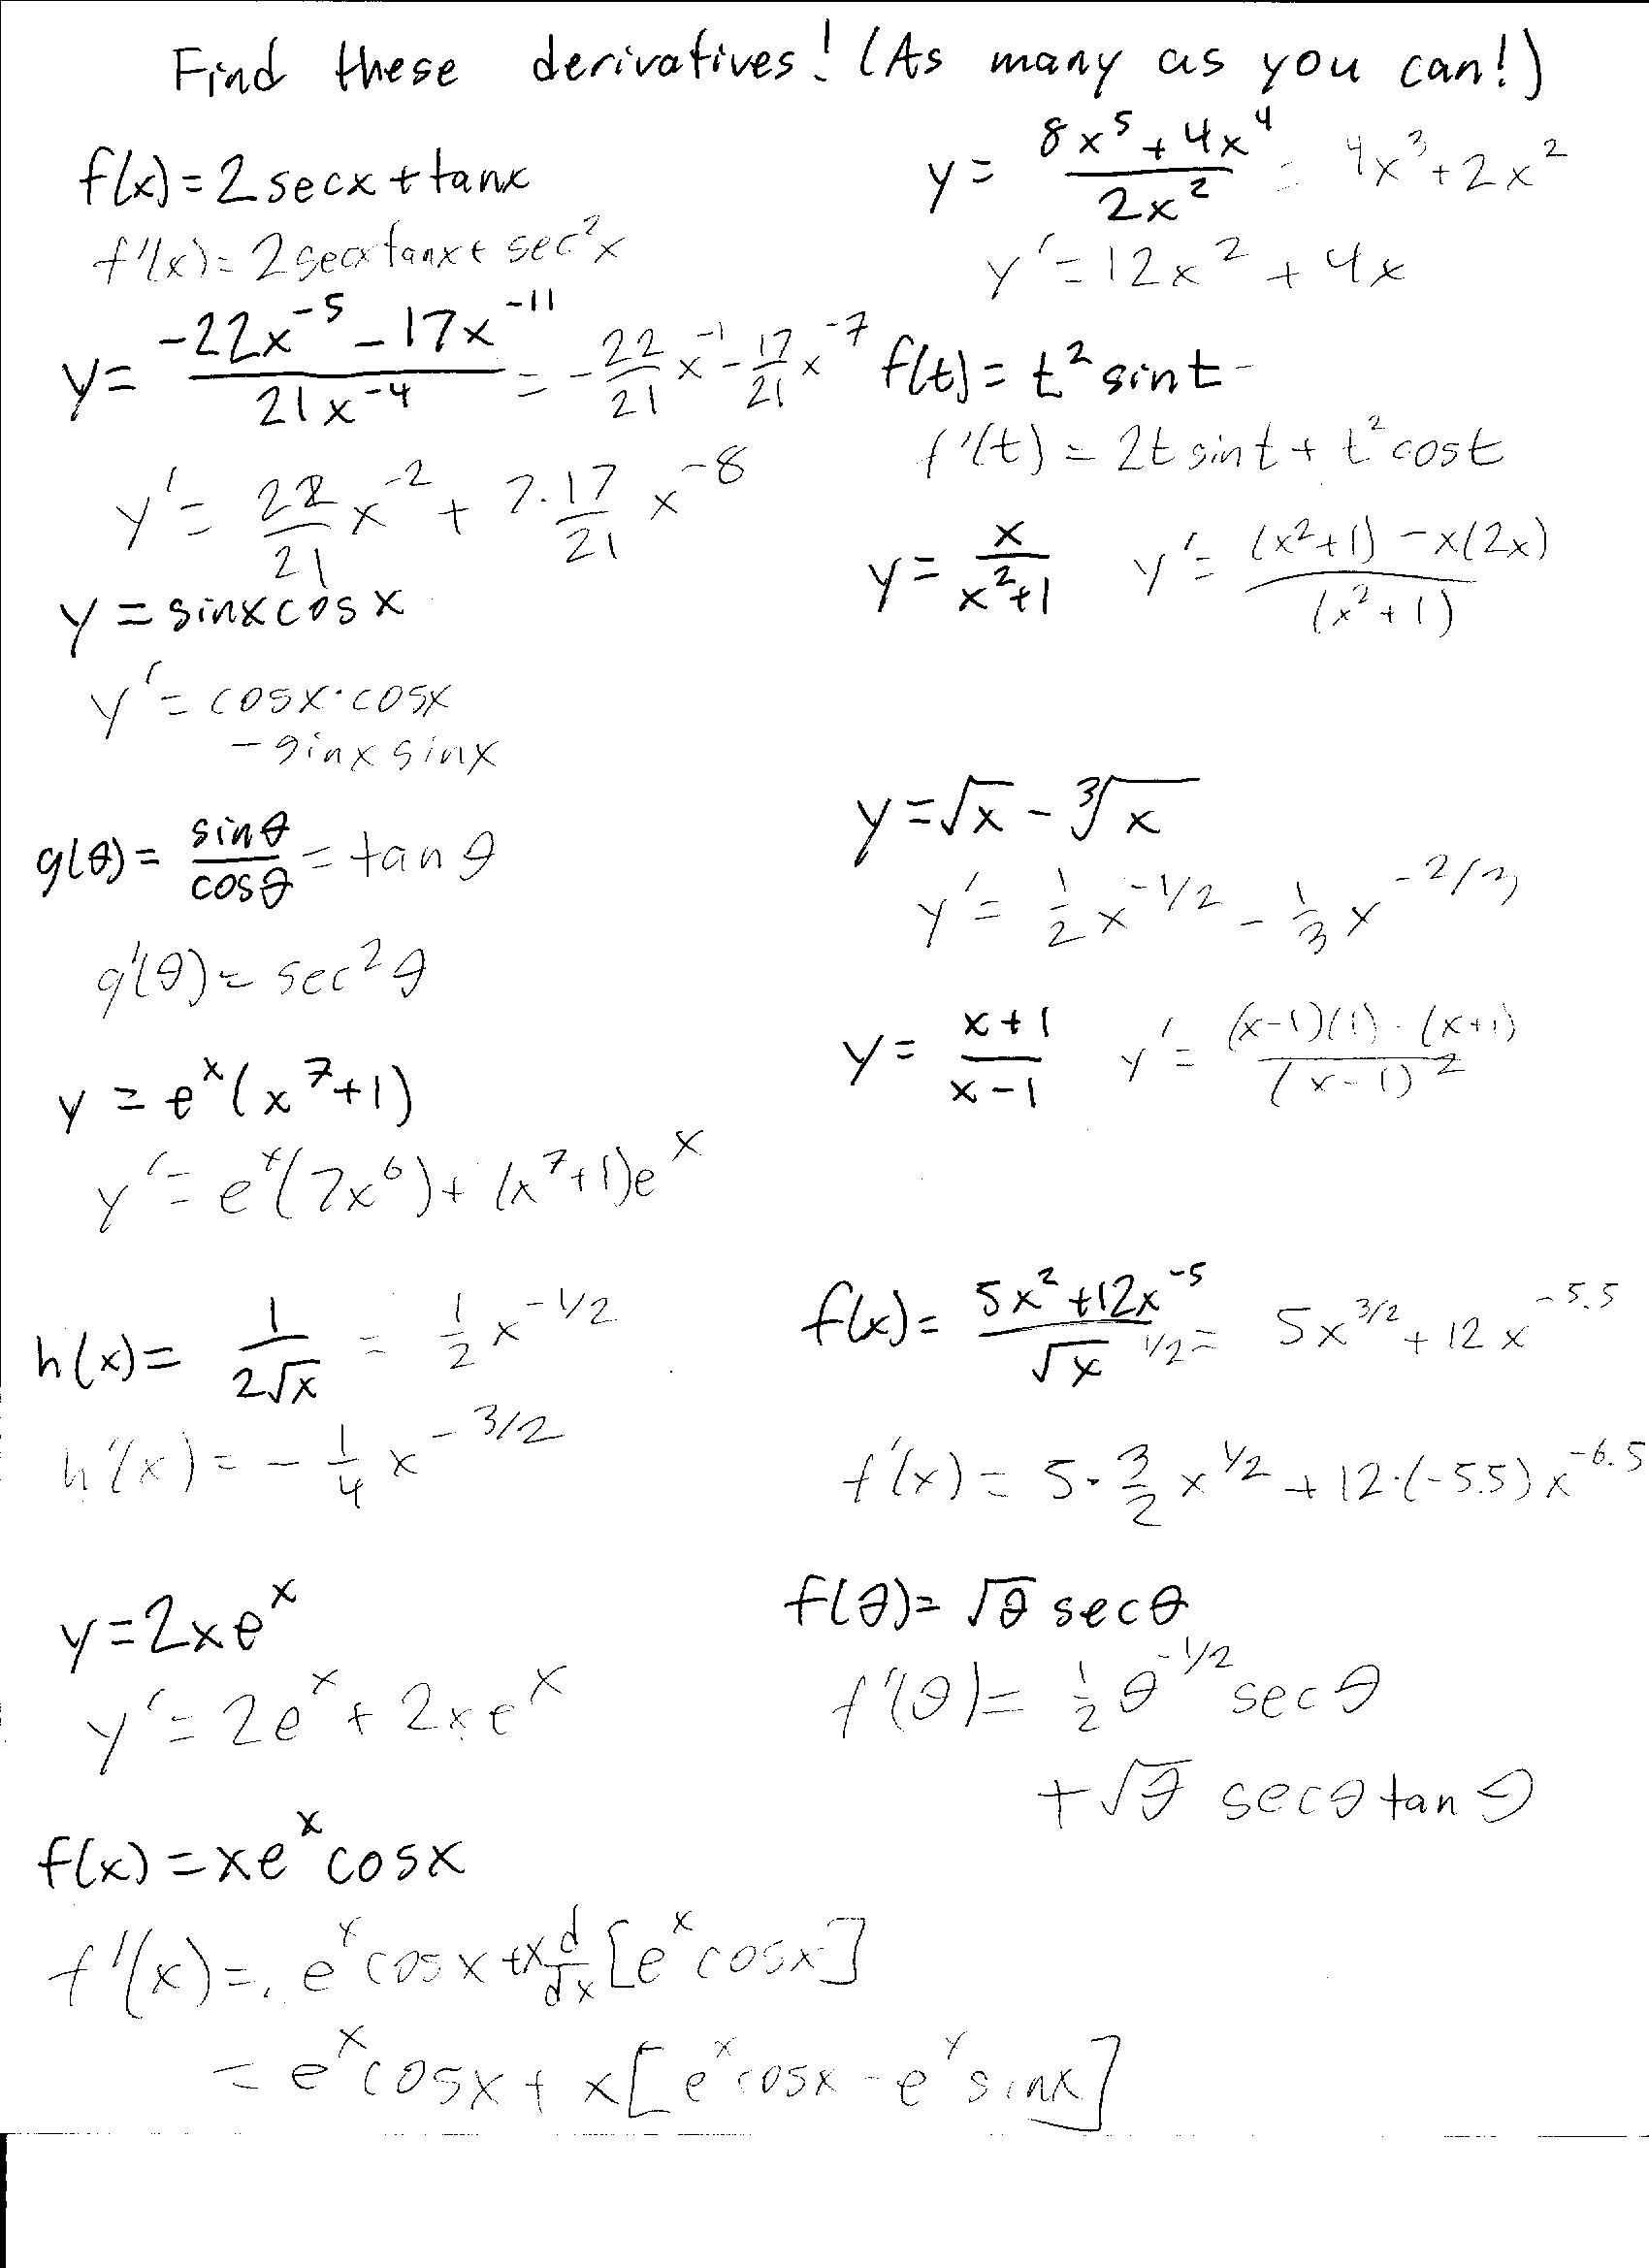 Worksheets Derivatives Worksheet derivatives worksheet free worksheets library download and print deriv tive w ksheet ksheets libr ry downlo d nd pr t